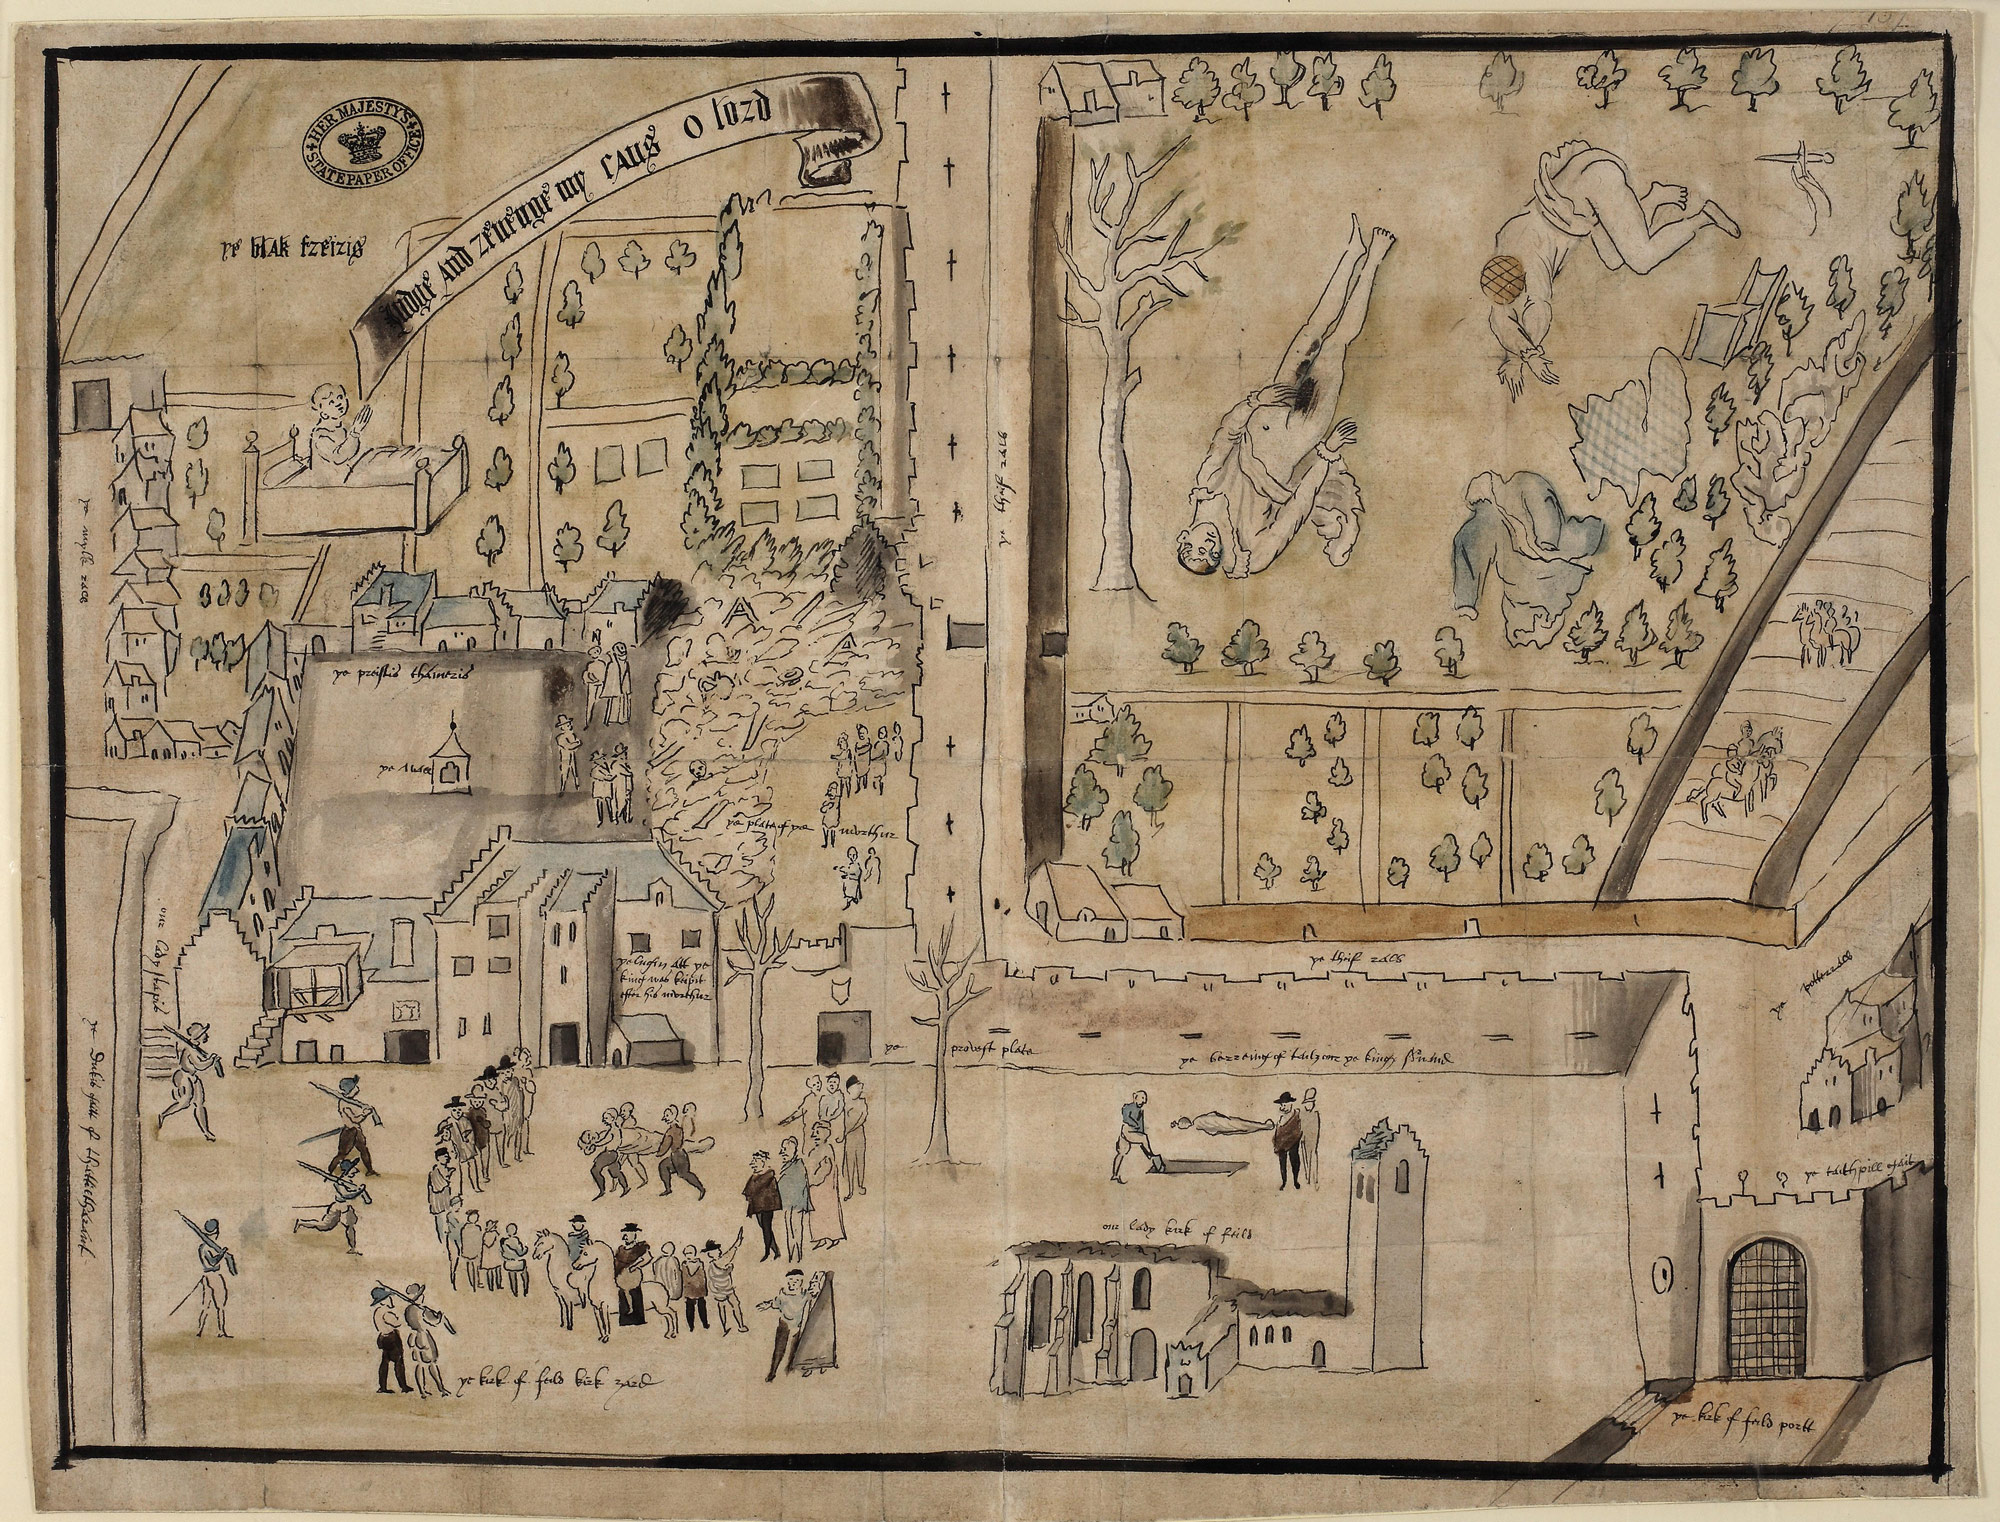 Map of the murder of Lord Darnley, 1567